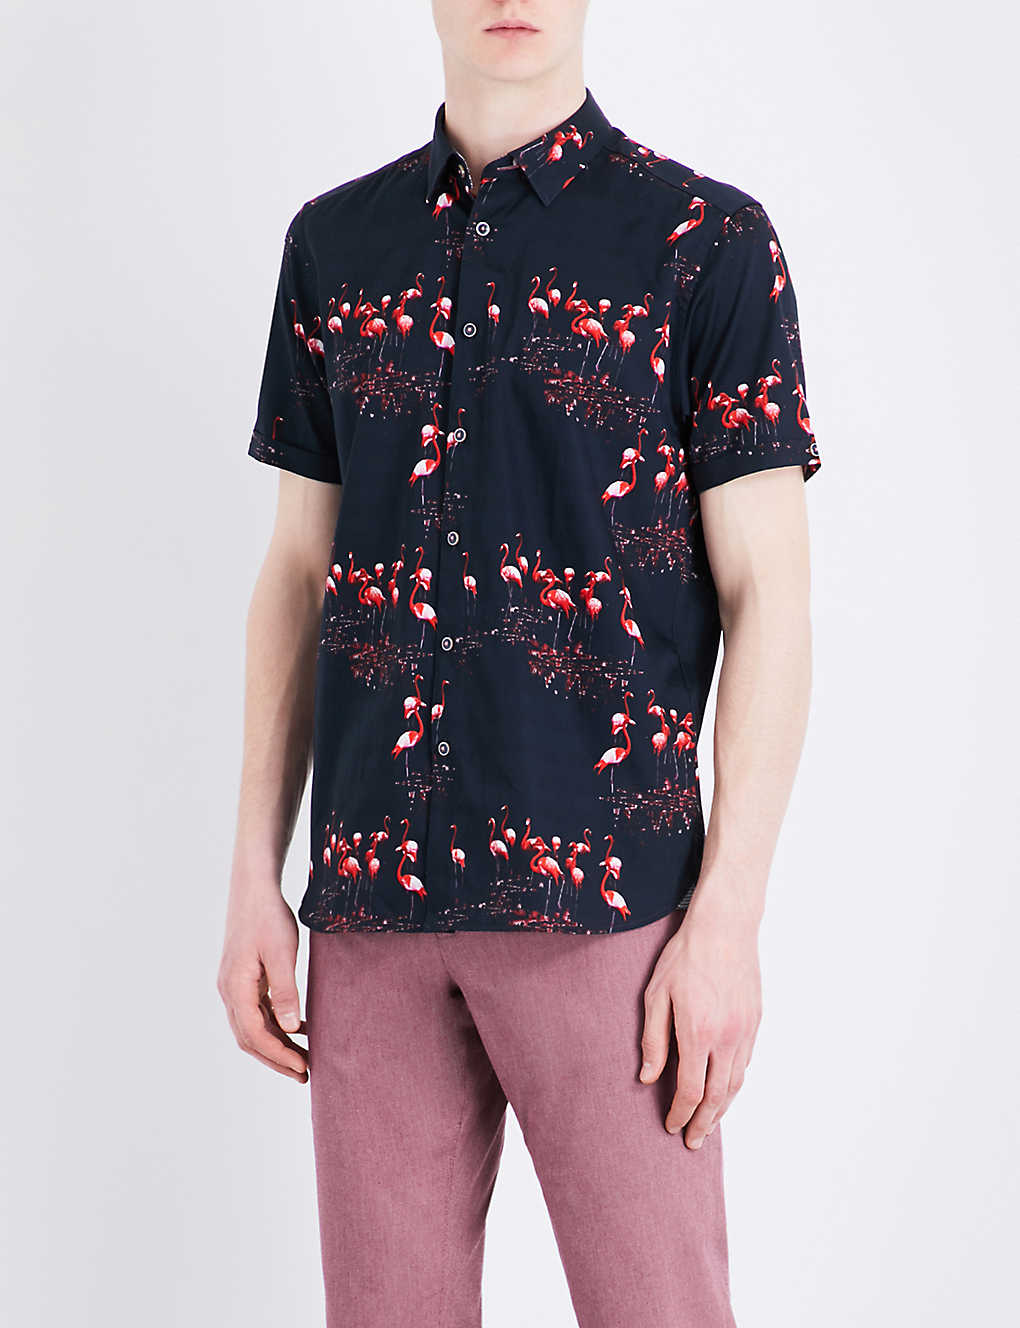 acb1c7d91 TED BAKER - Flaming flamingo-print cotton shirt